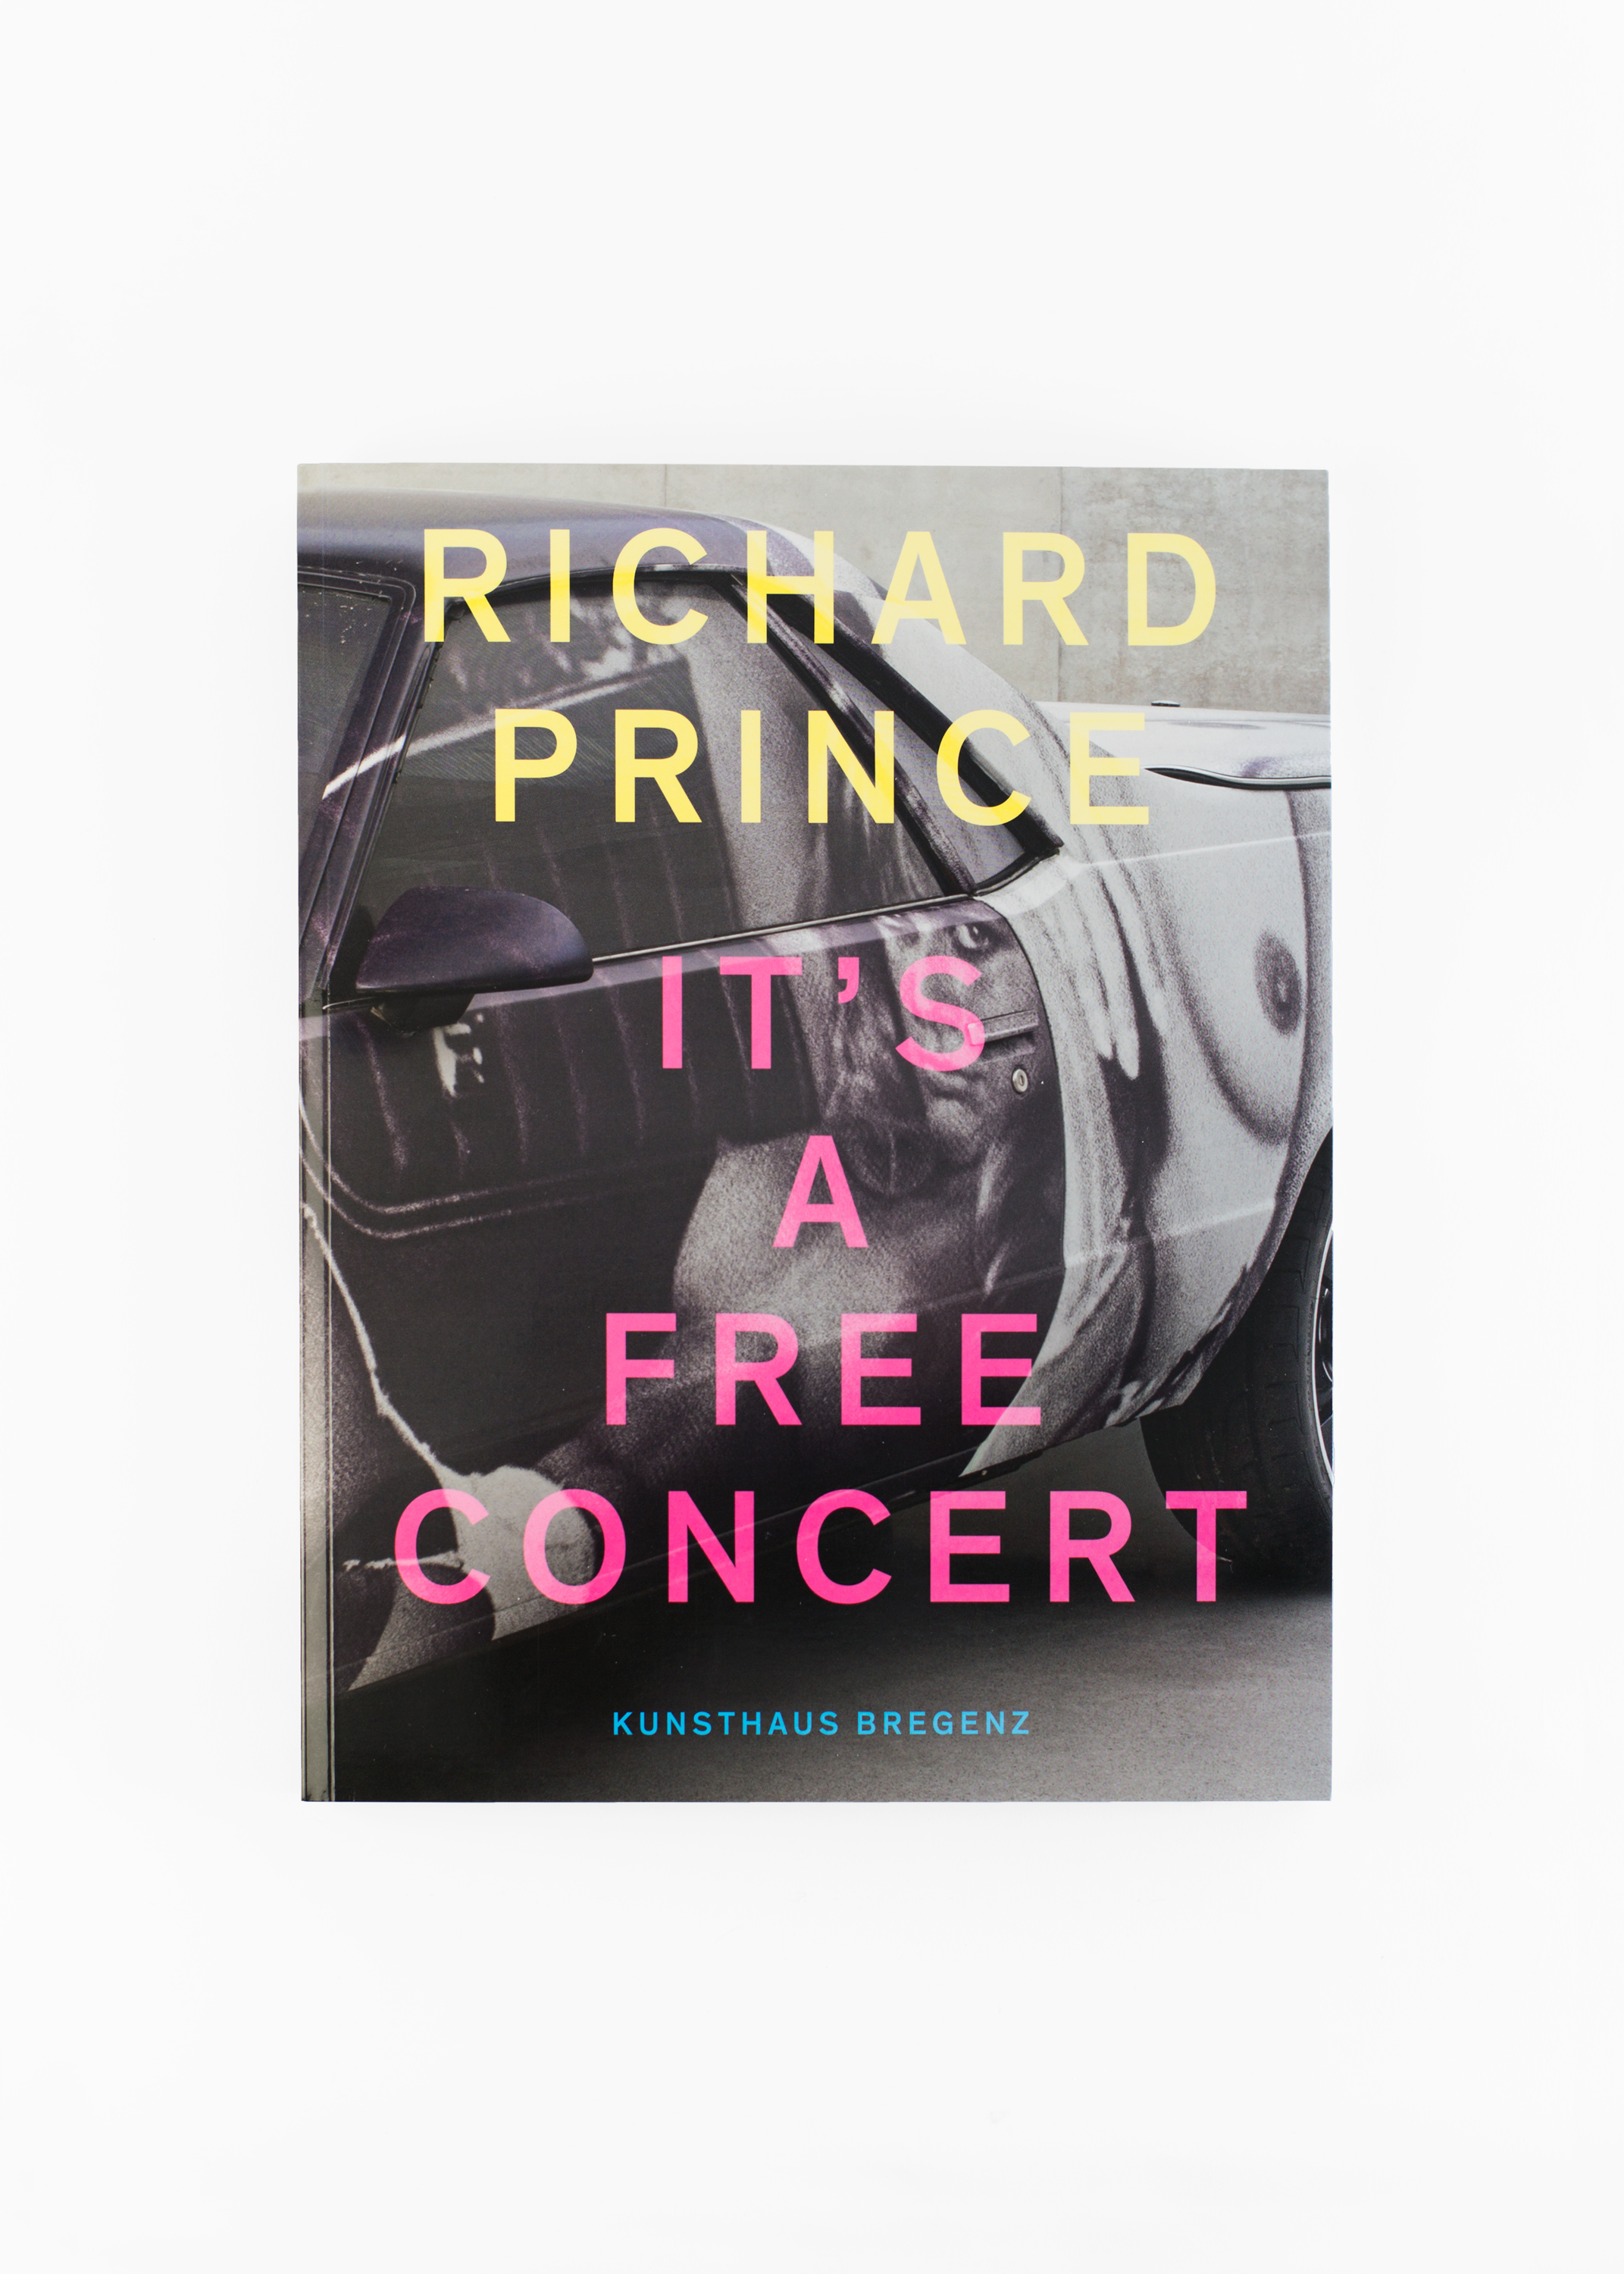 "Richard Prince - It's A Free Concert</br>256 pages 23.5 x 30.5 cm</br>2015</br>€50 <a href=""https://www.paypal.com/cgi-bin/webscr?cmd=_s-xclick&amp;hosted_button_id=EP3F5975DL572"">Add to Cart</a>"